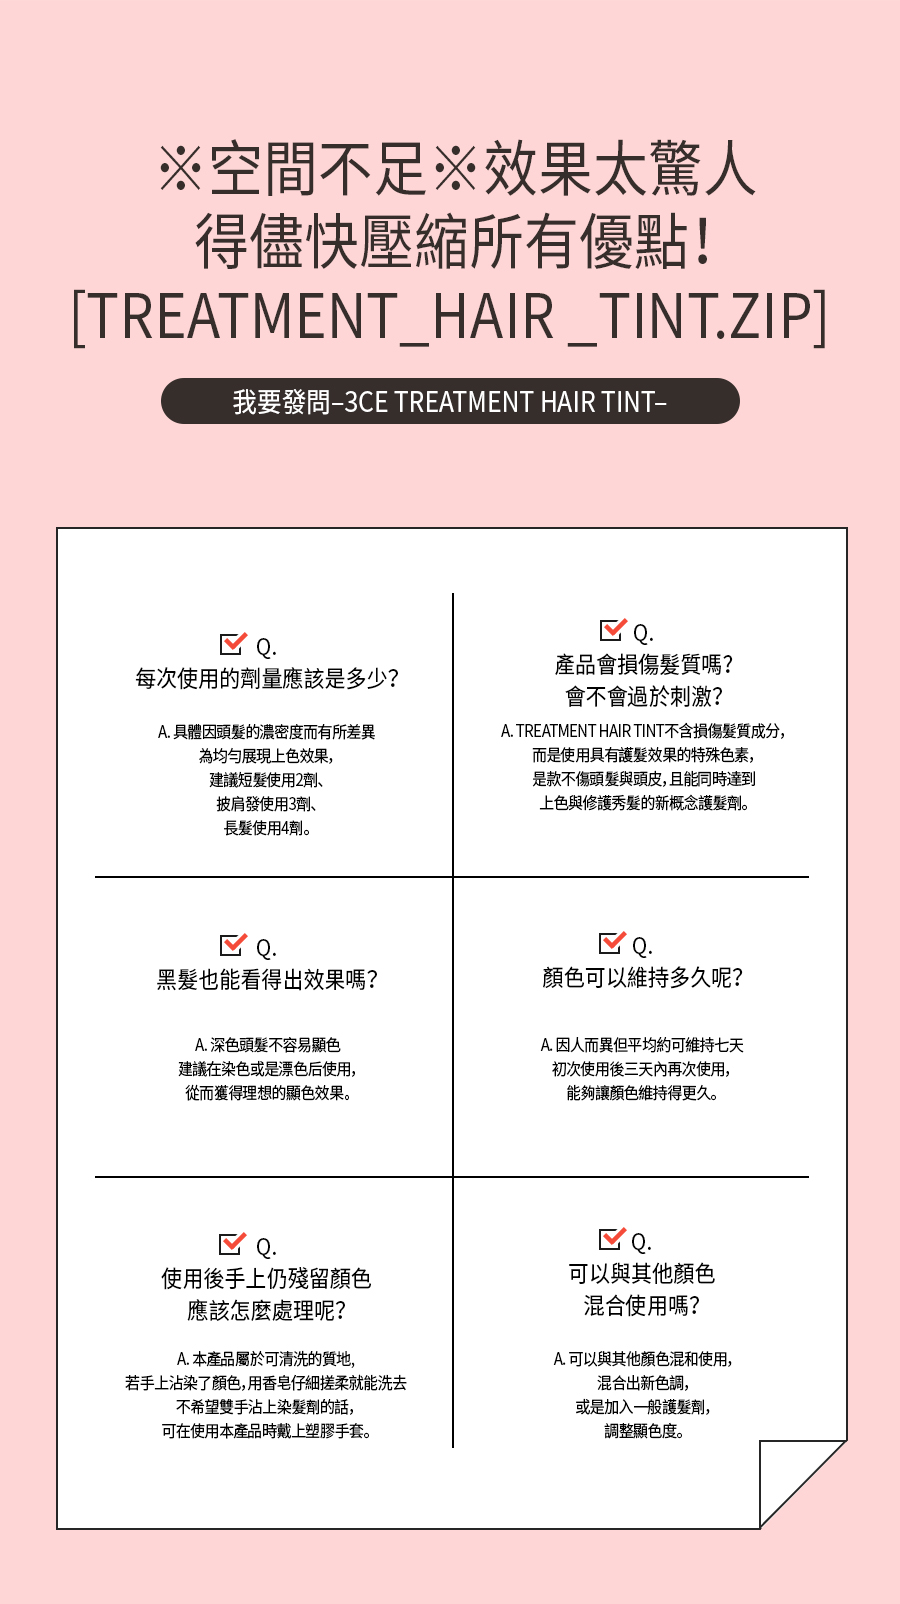 170421-hairtint(3)_tw.jpg